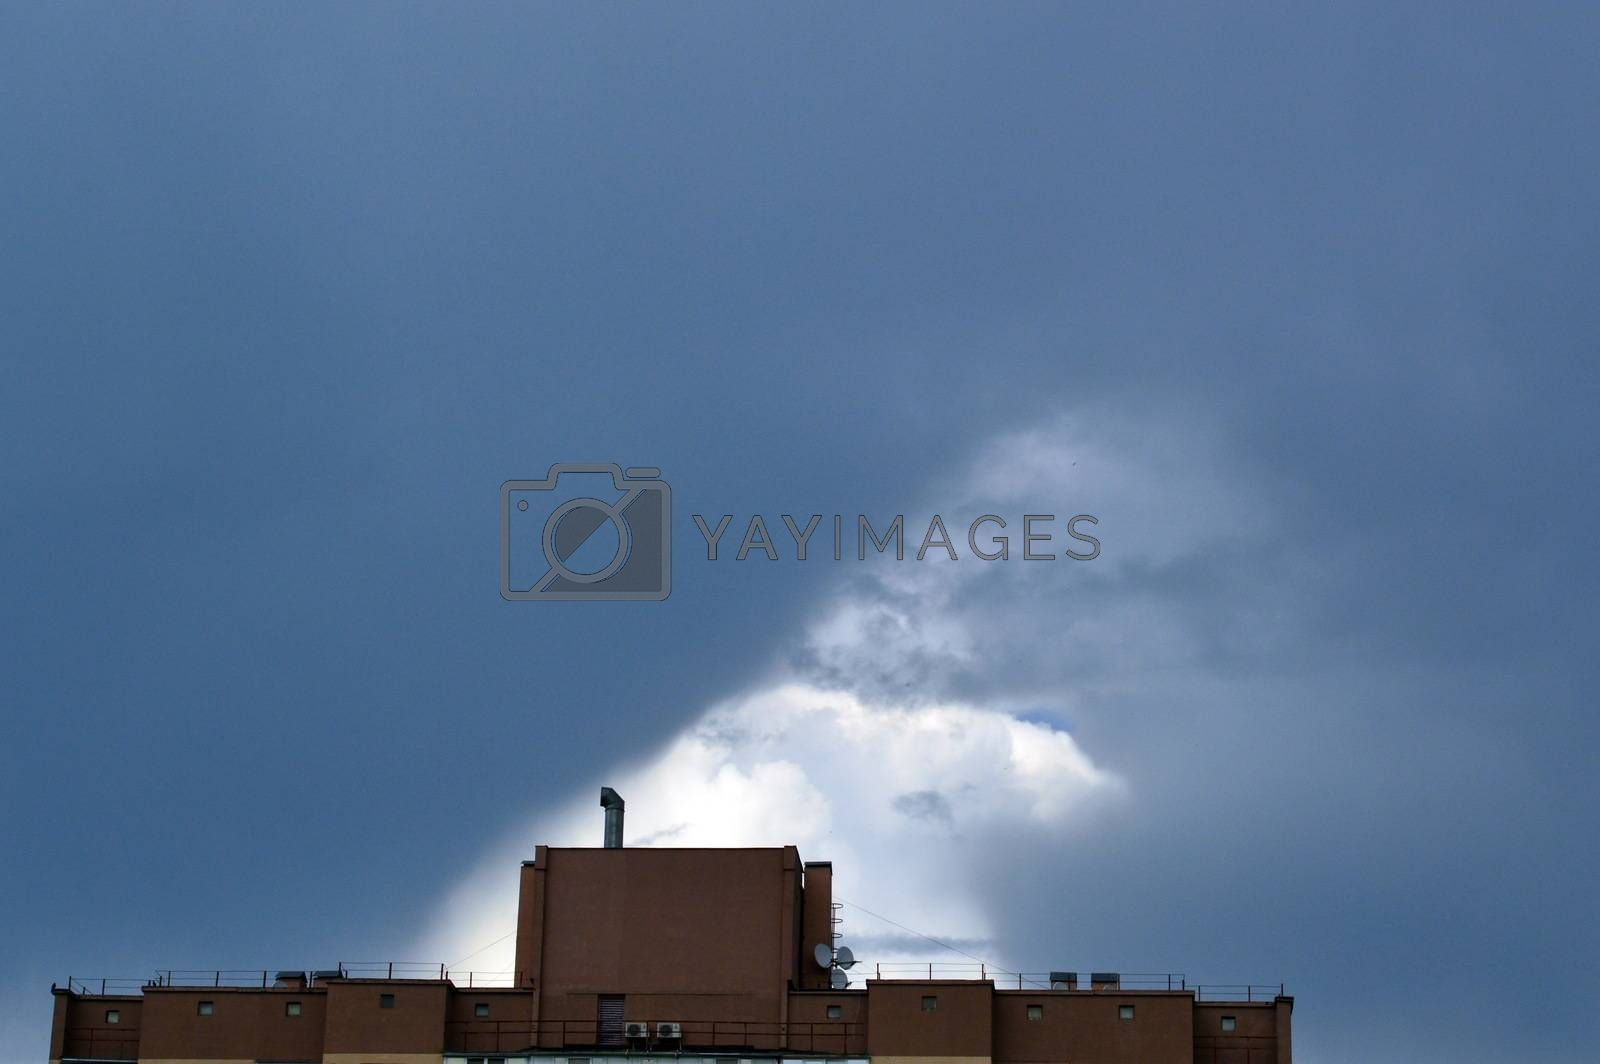 Clouds in the sky in clear weather by Prokopenko